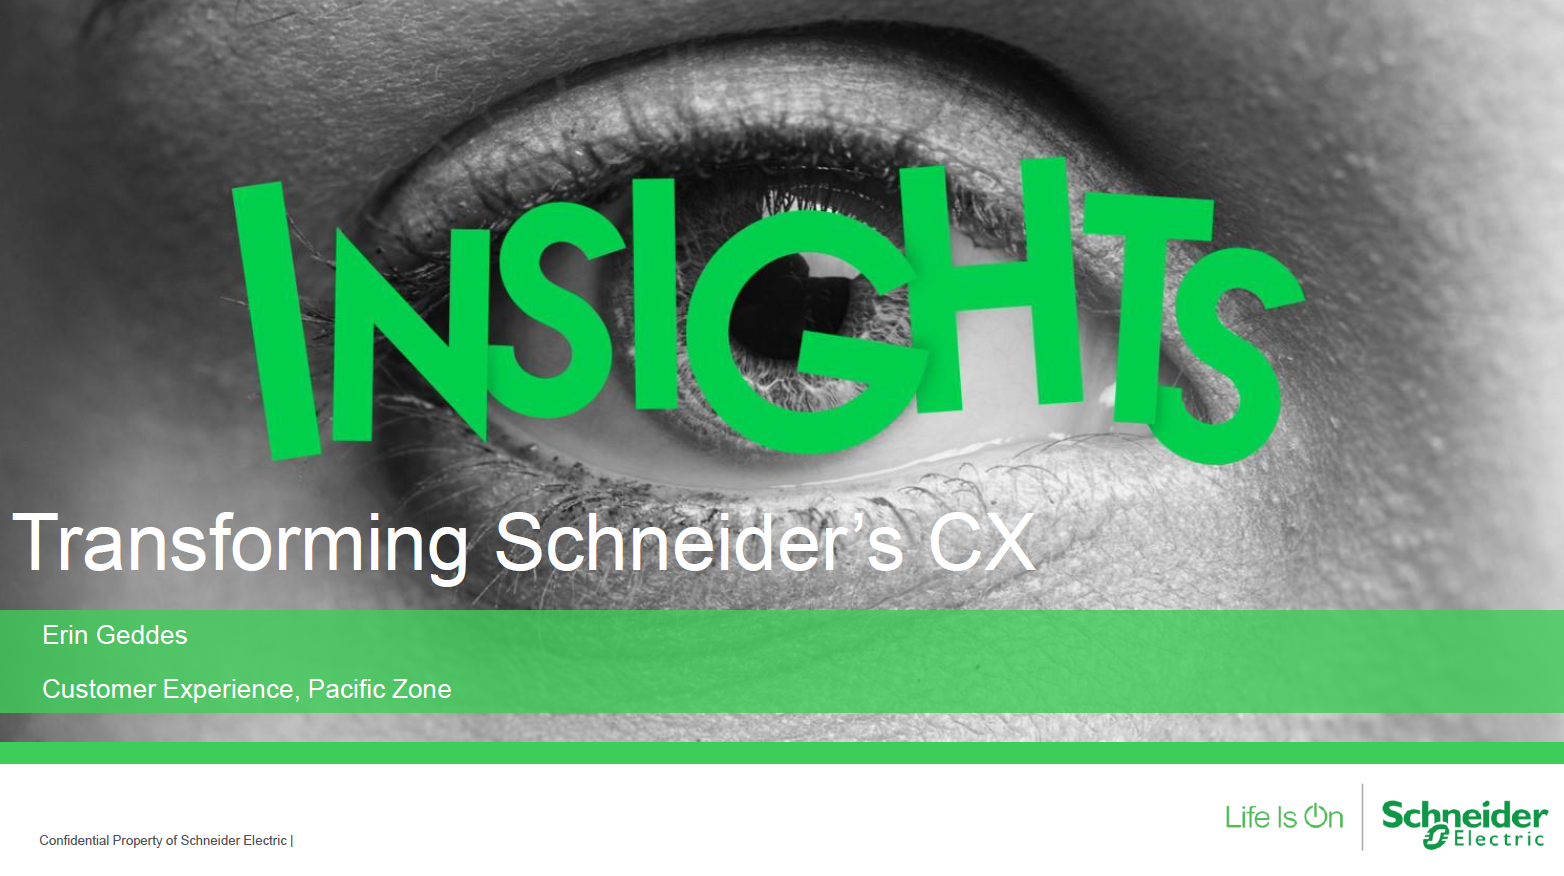 Becoming Customer Centric by Transforming Schneider's Workforce